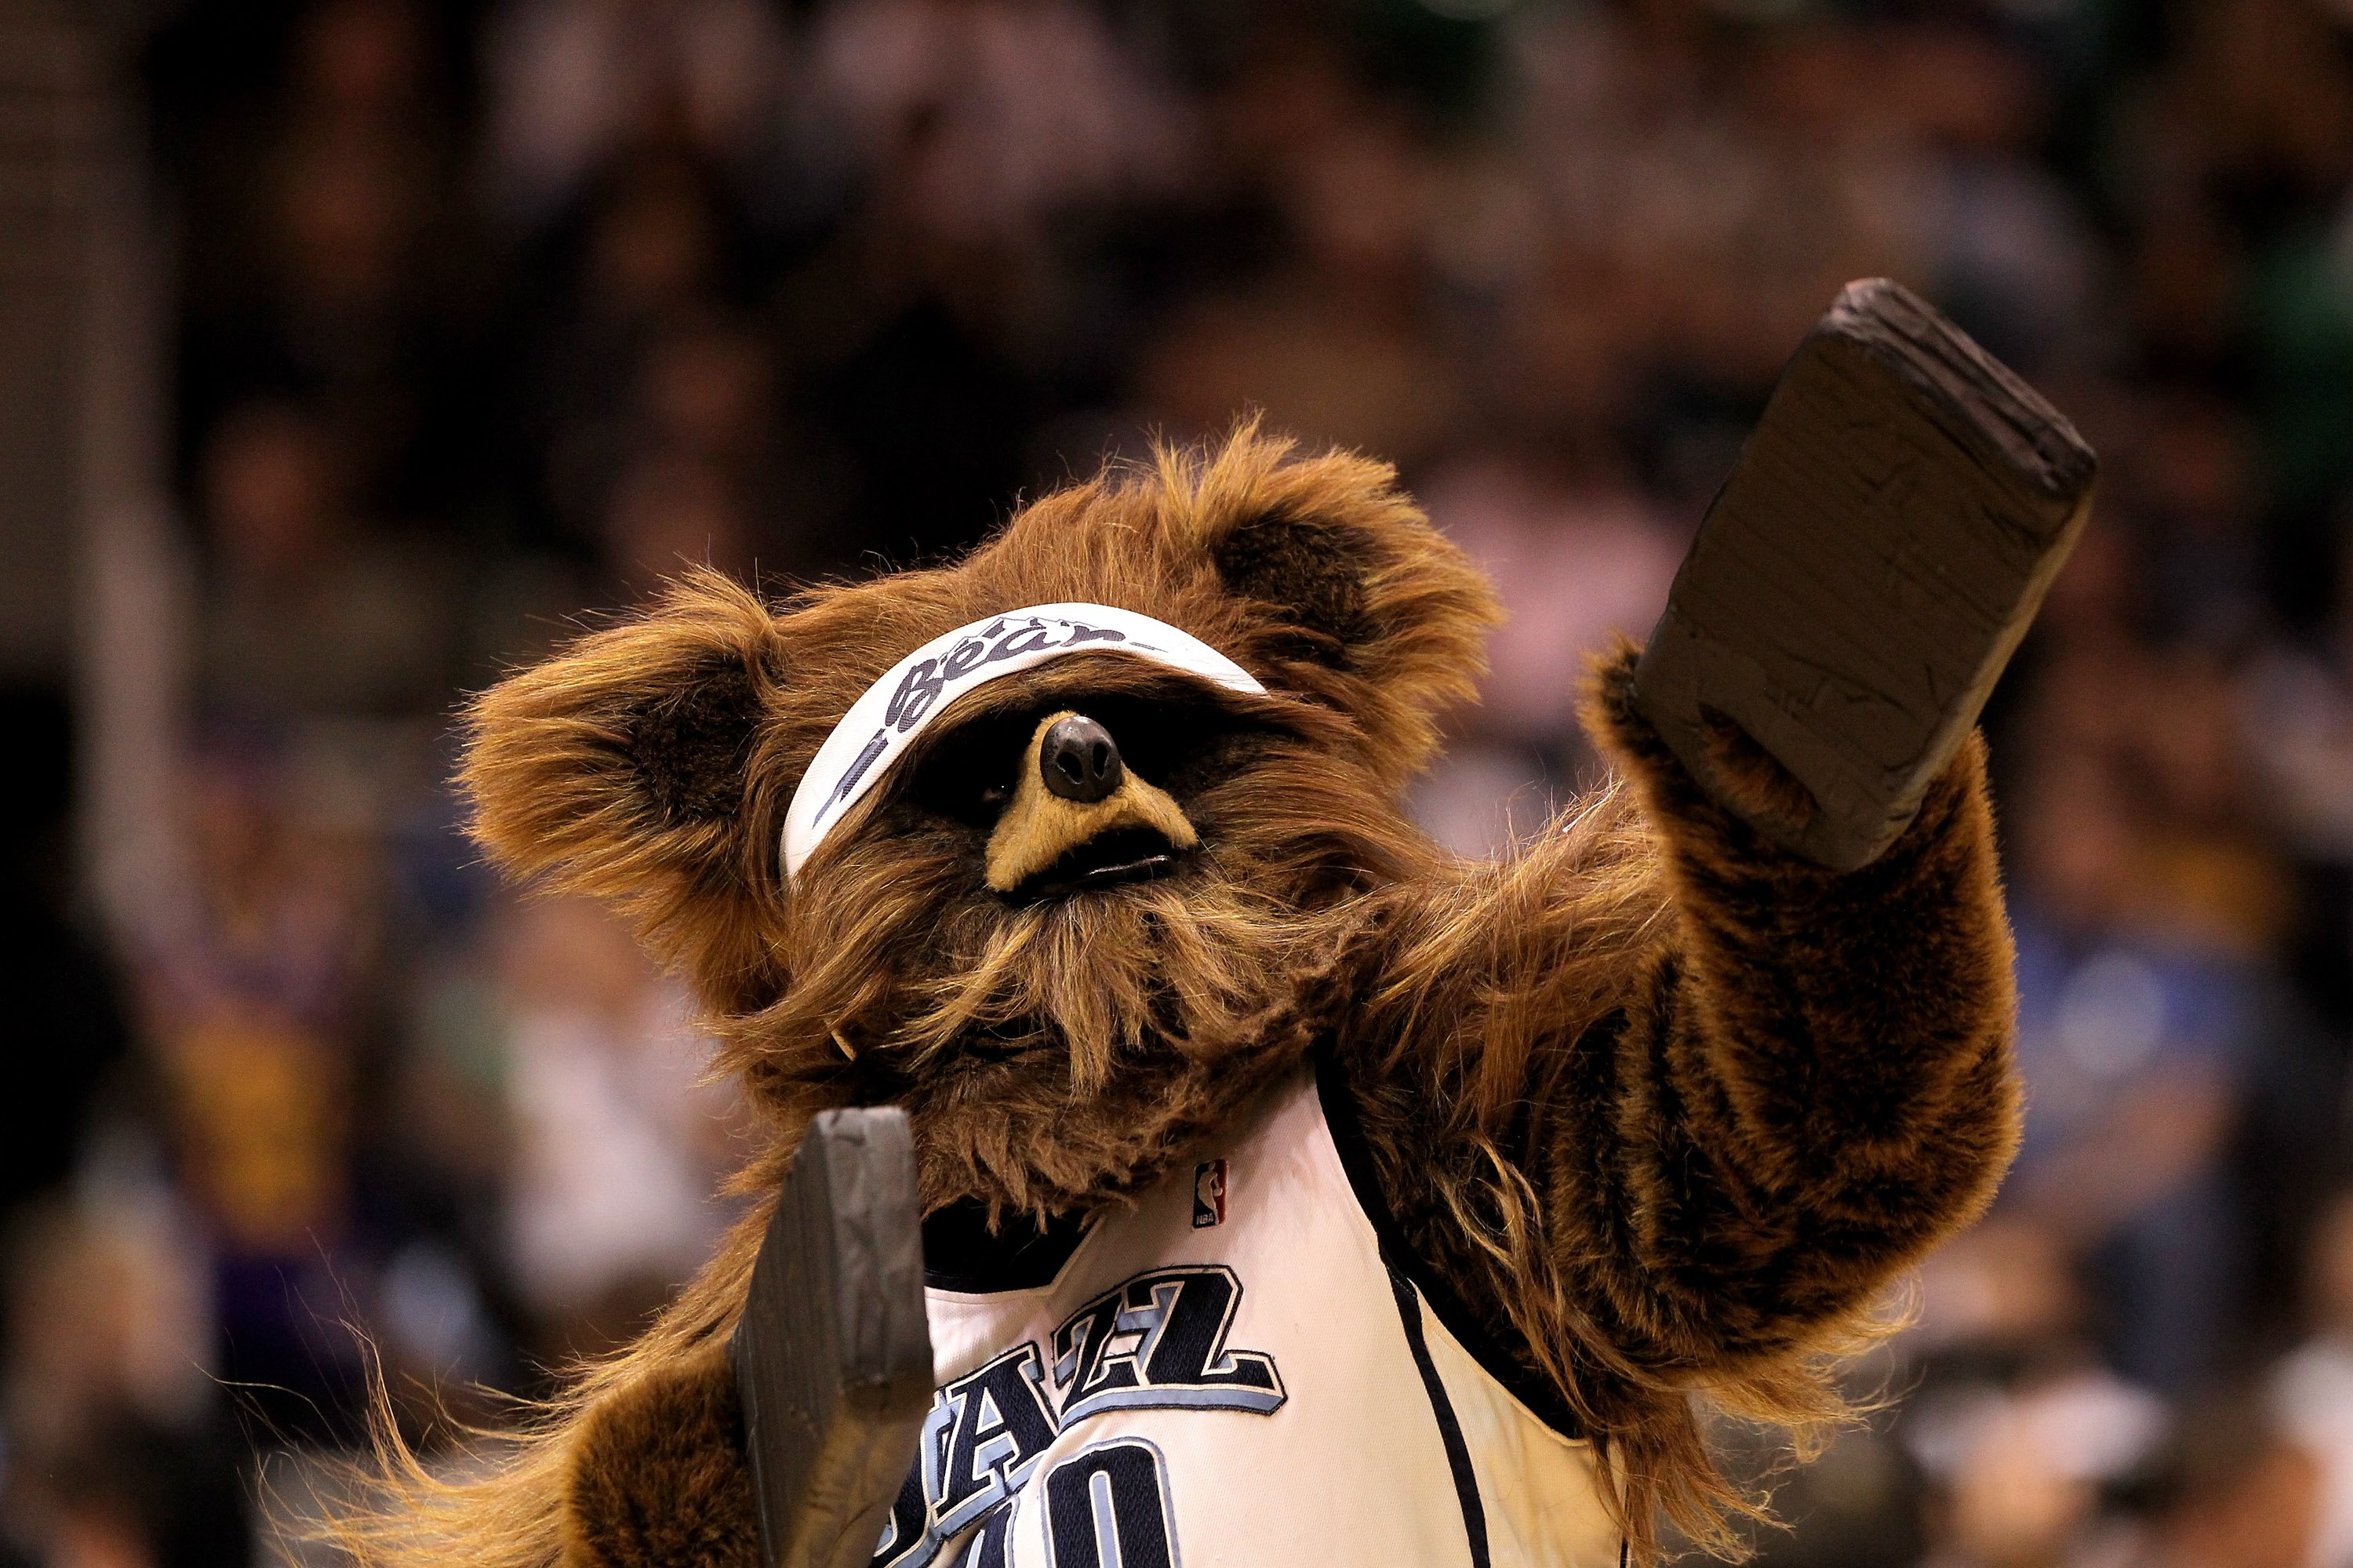 SALT LAKE CITY - APRIL 30:  The Utah Jazz mascot, Bear, performs during a time out of their game against the Denver Nuggets during Game Six of the Western Conference Quarterfinals of the 2010 NBA Playoffs at EnergySolutions Arena on April 30, 2010 in Salt